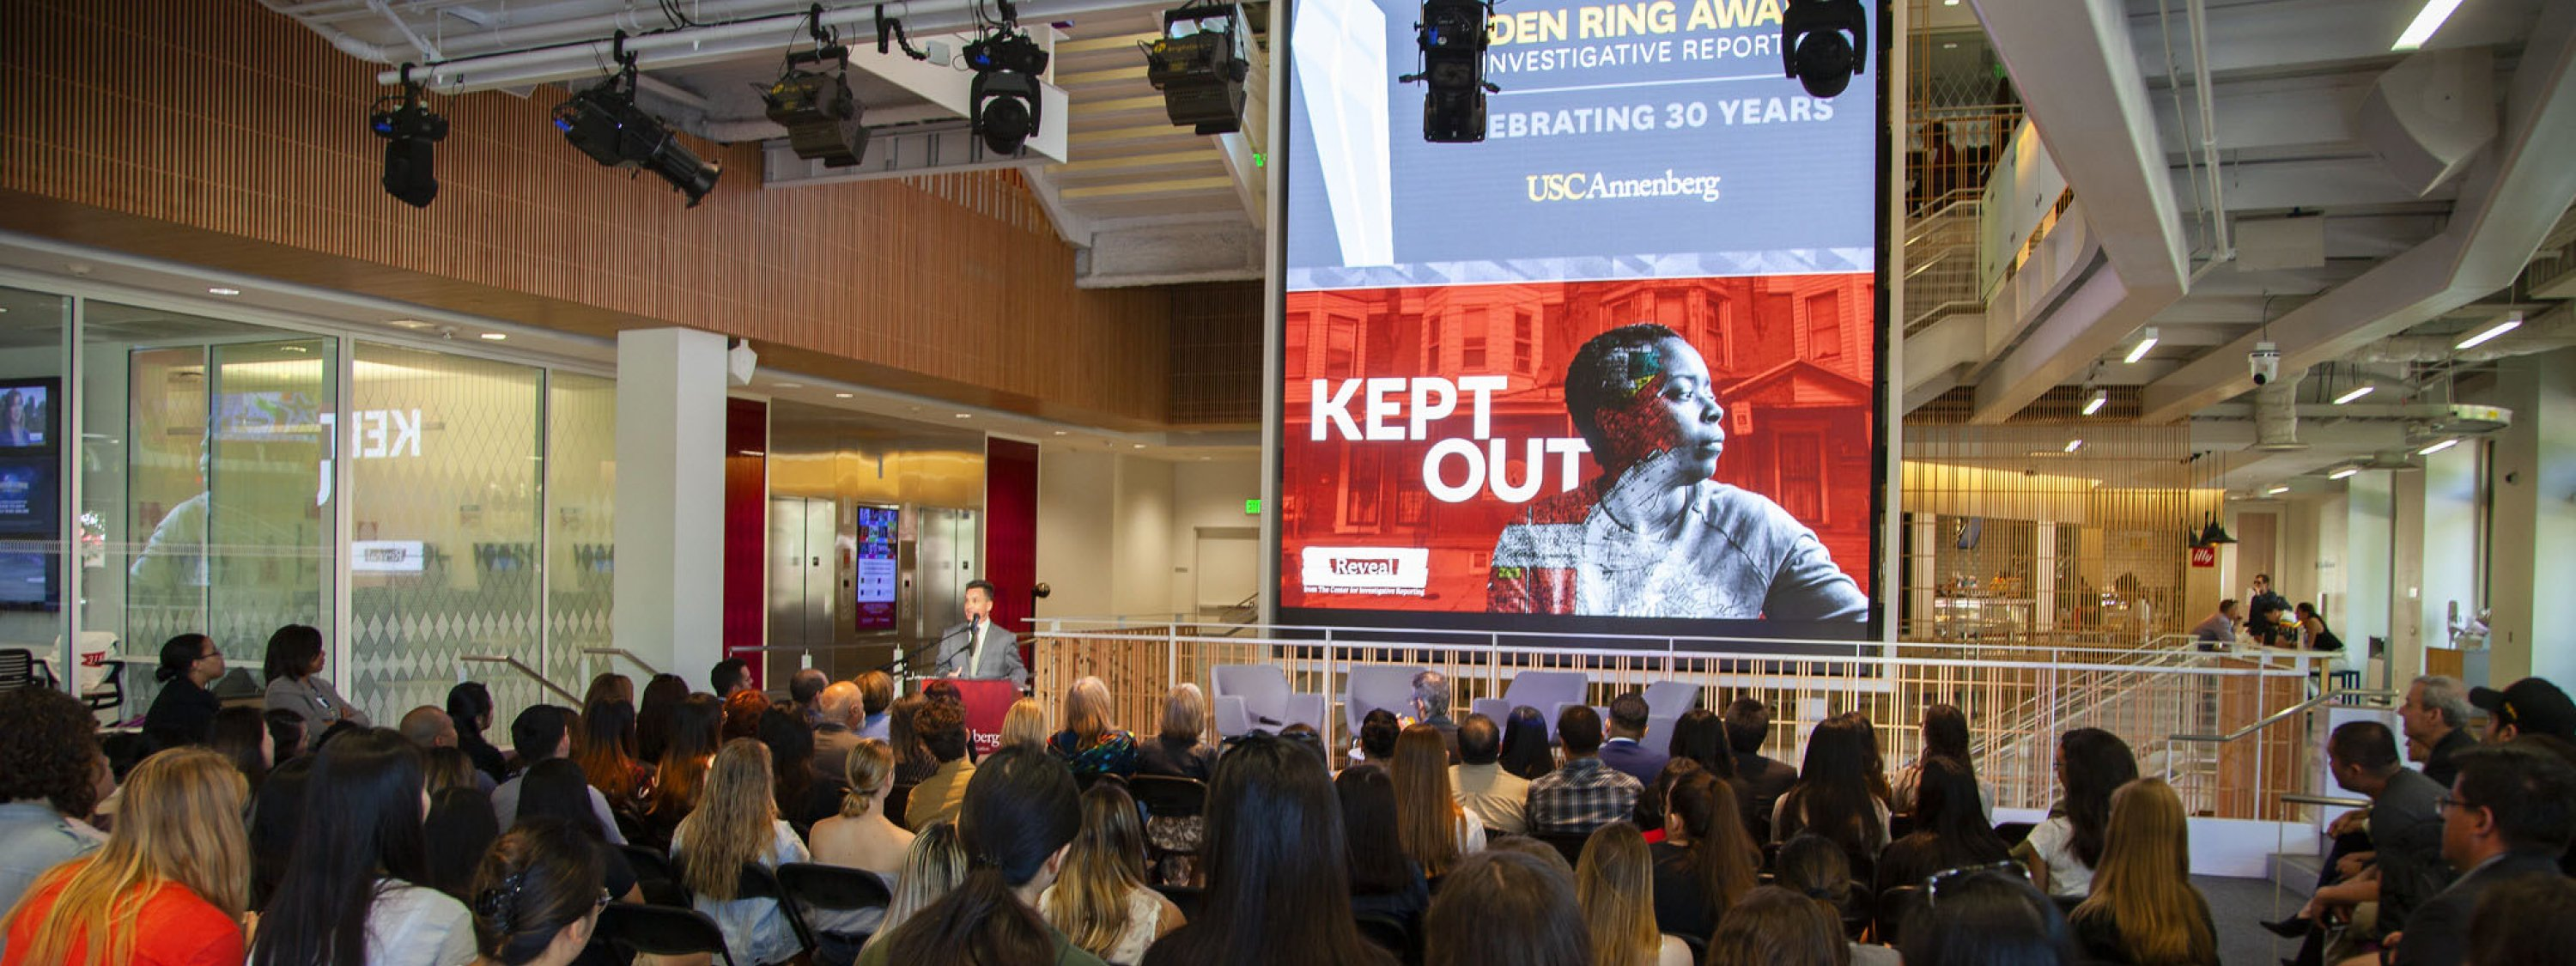 Photo of the presentation of the Selden Ring Award at USC Annenberg